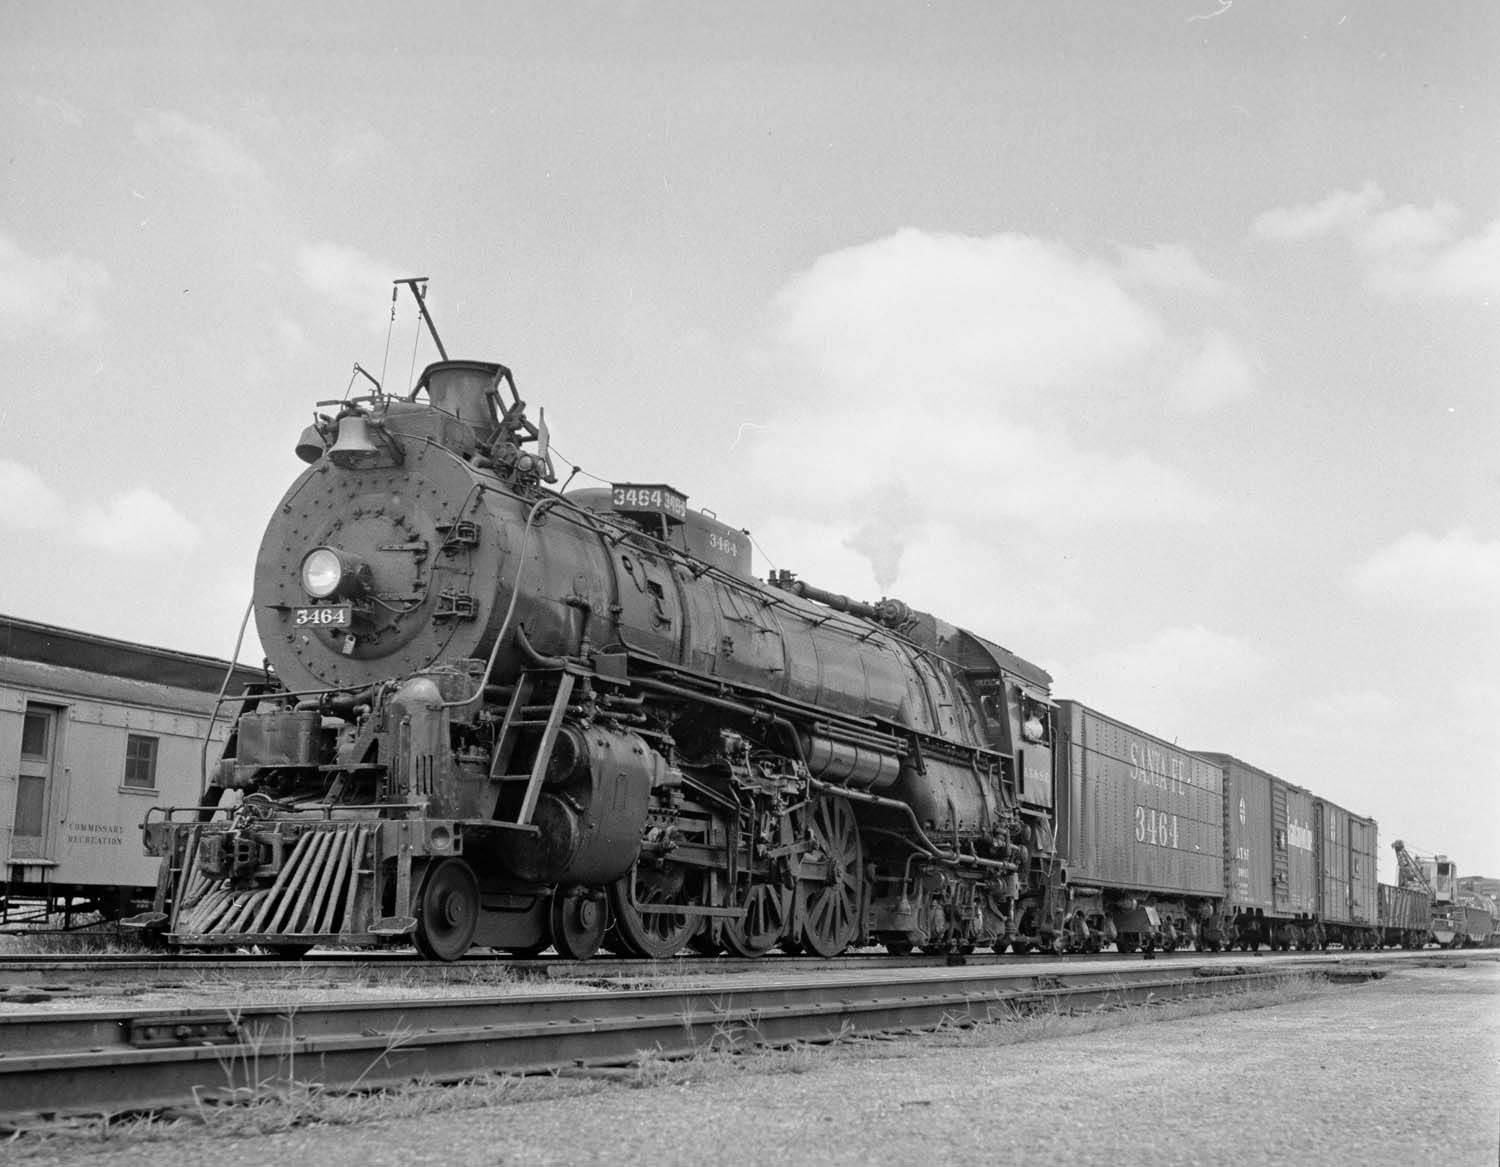 ATSF 3464 leads a work train at Winfield, Kansas in 1953